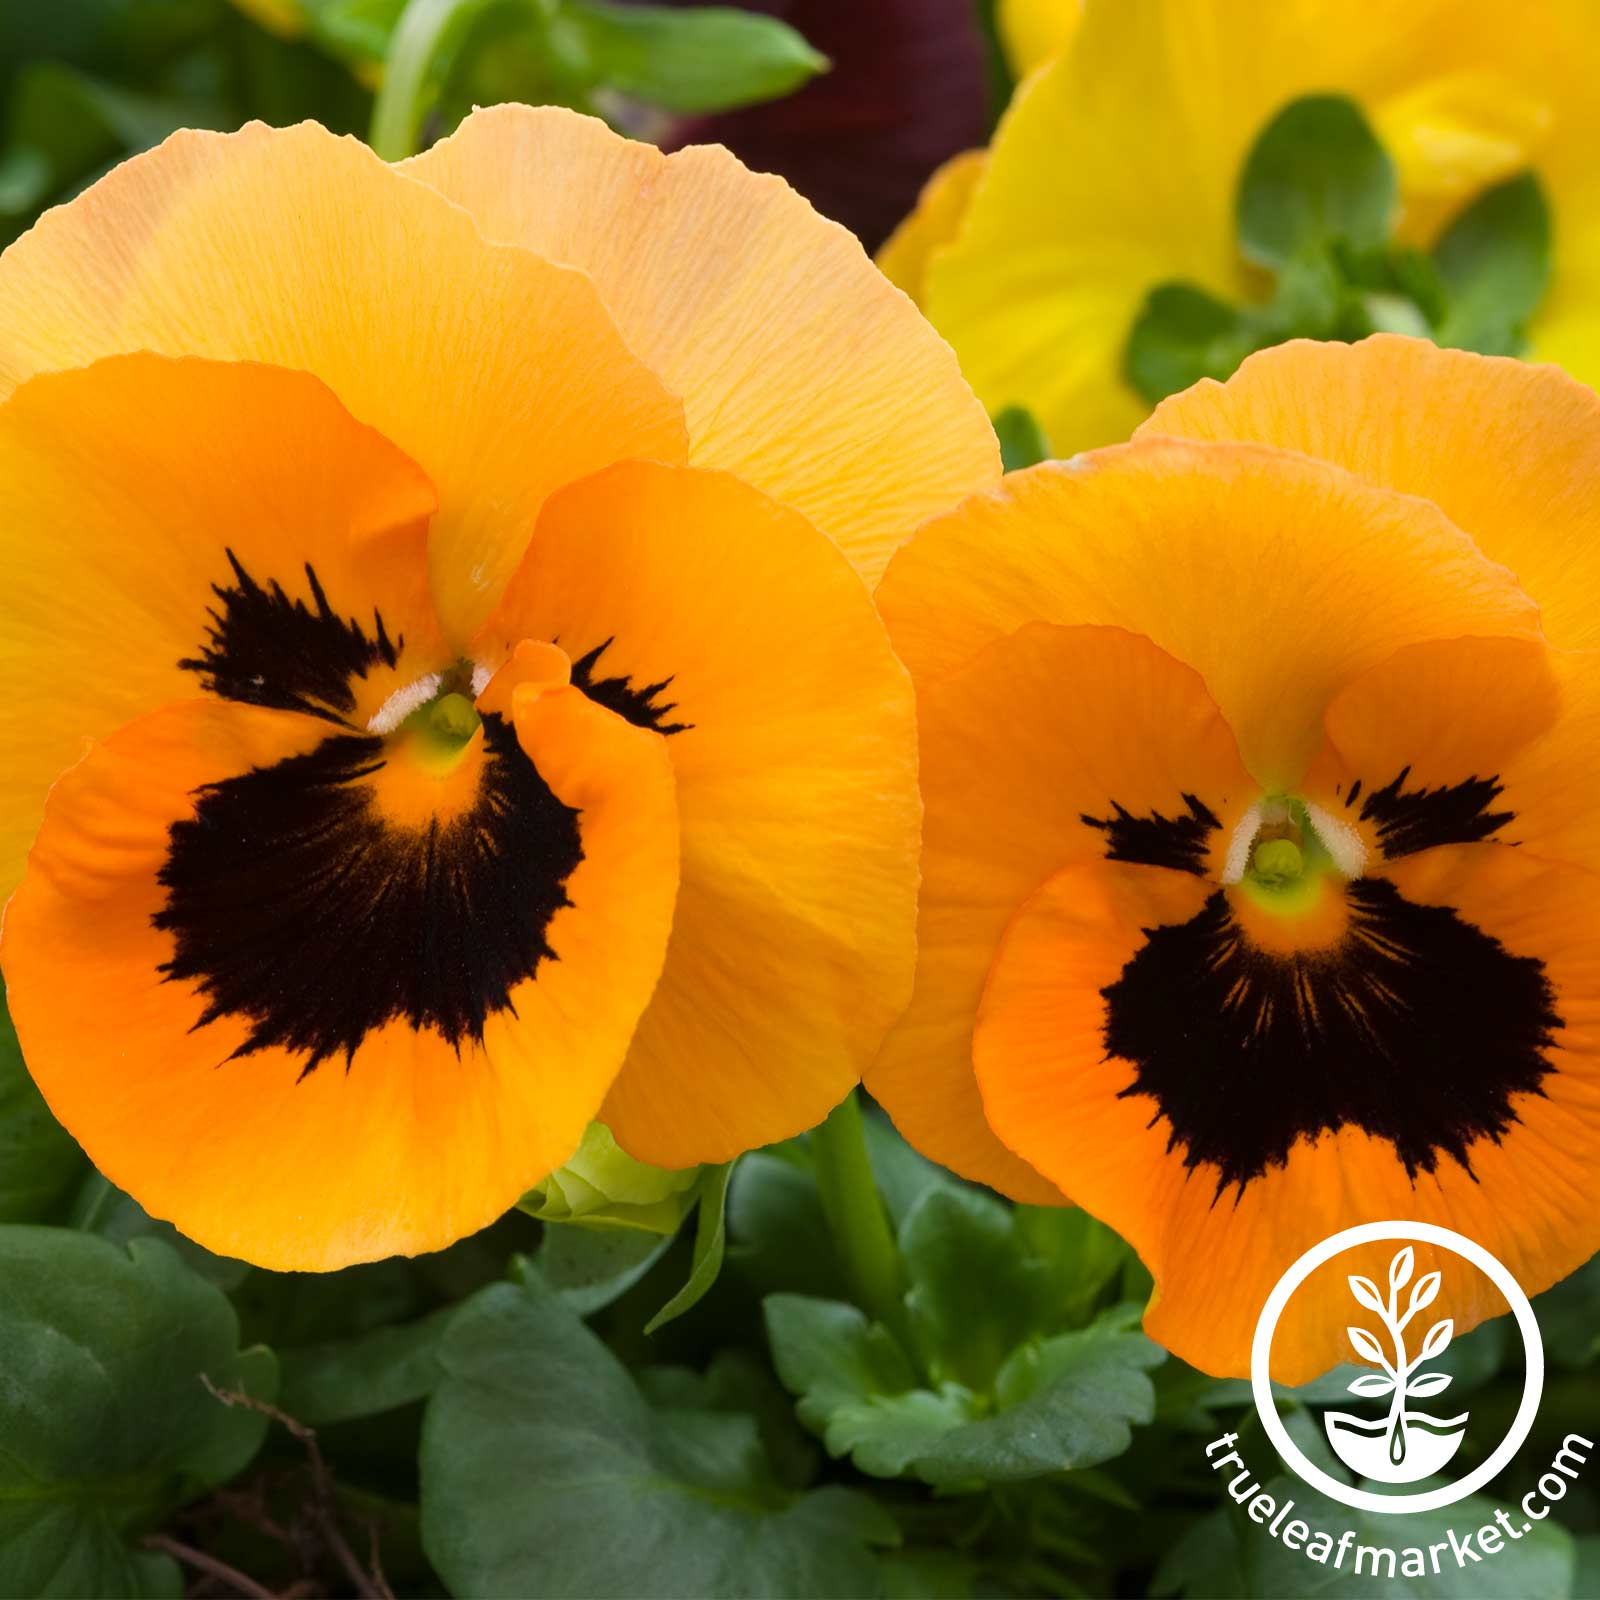 Pansy Delta Premium Series Orange Blotch Seed